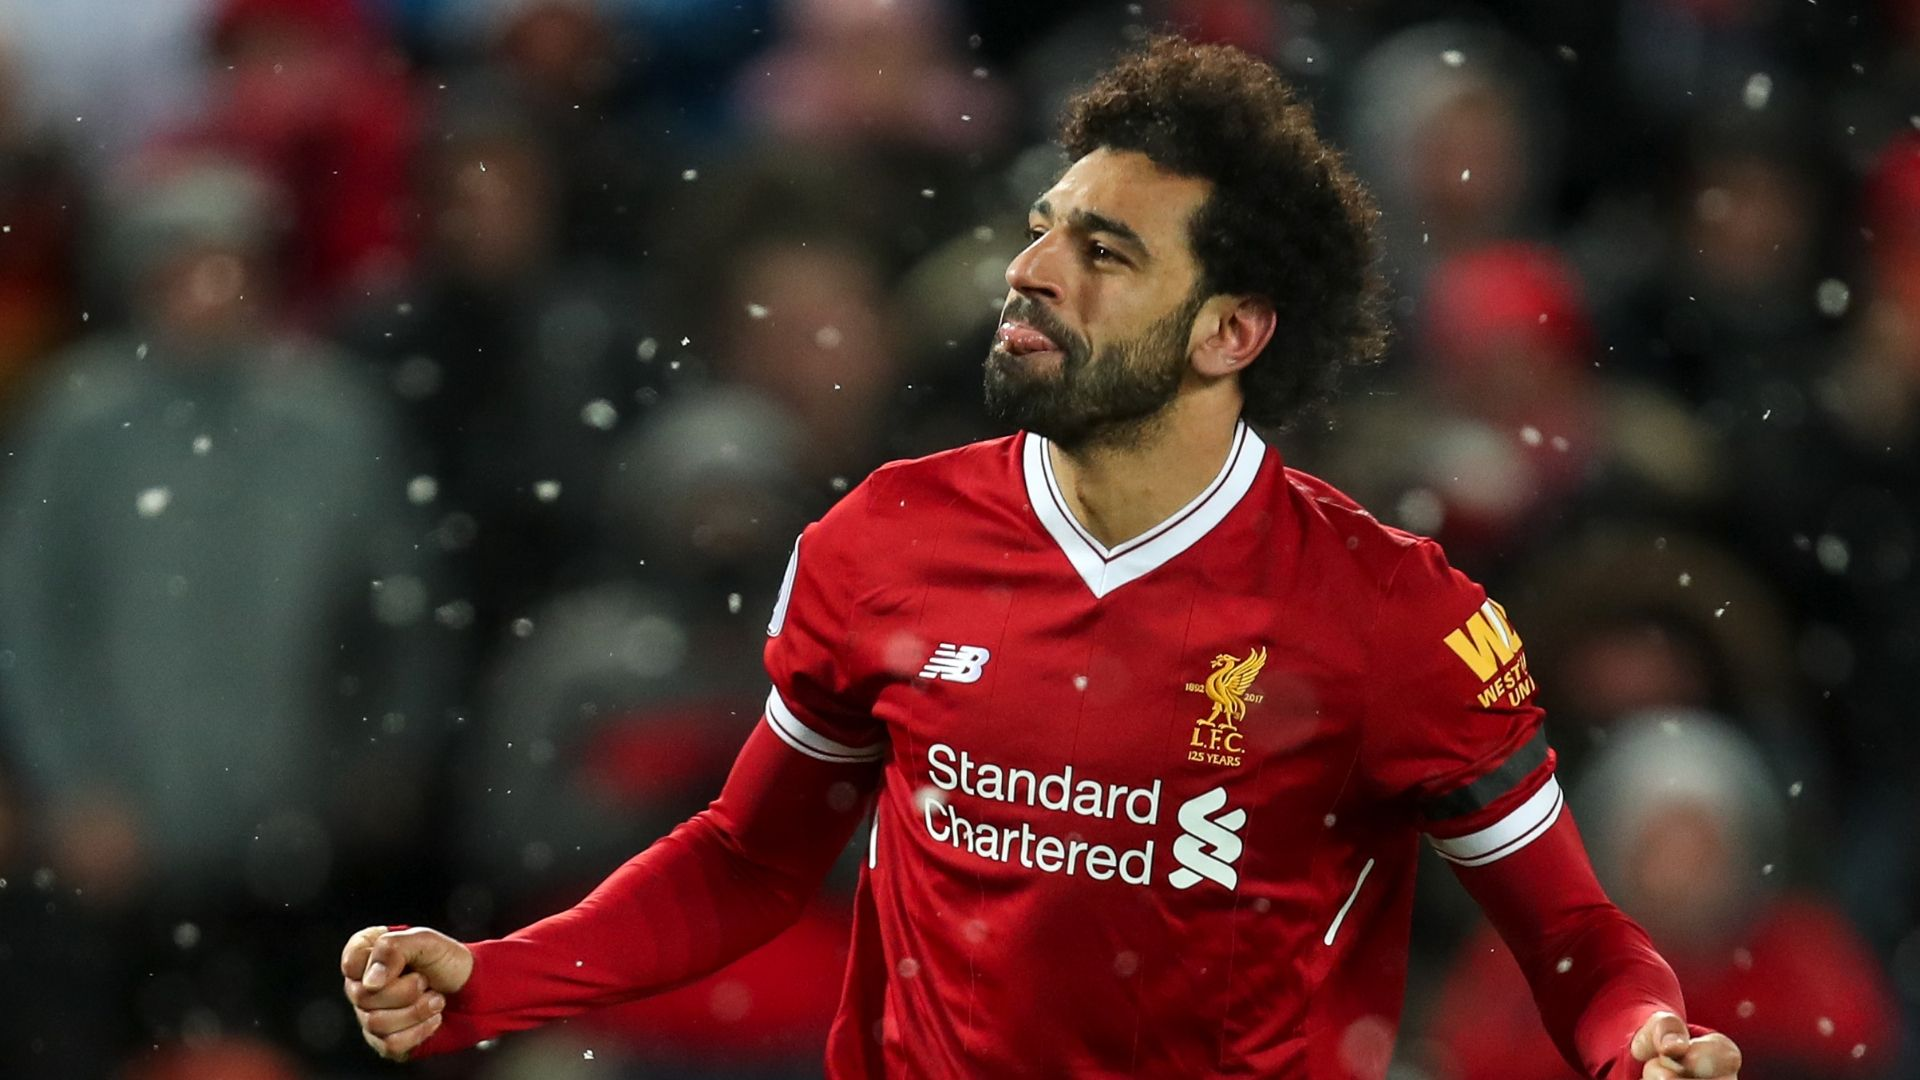 Salah 'on the way' to Messi's level - Klopp